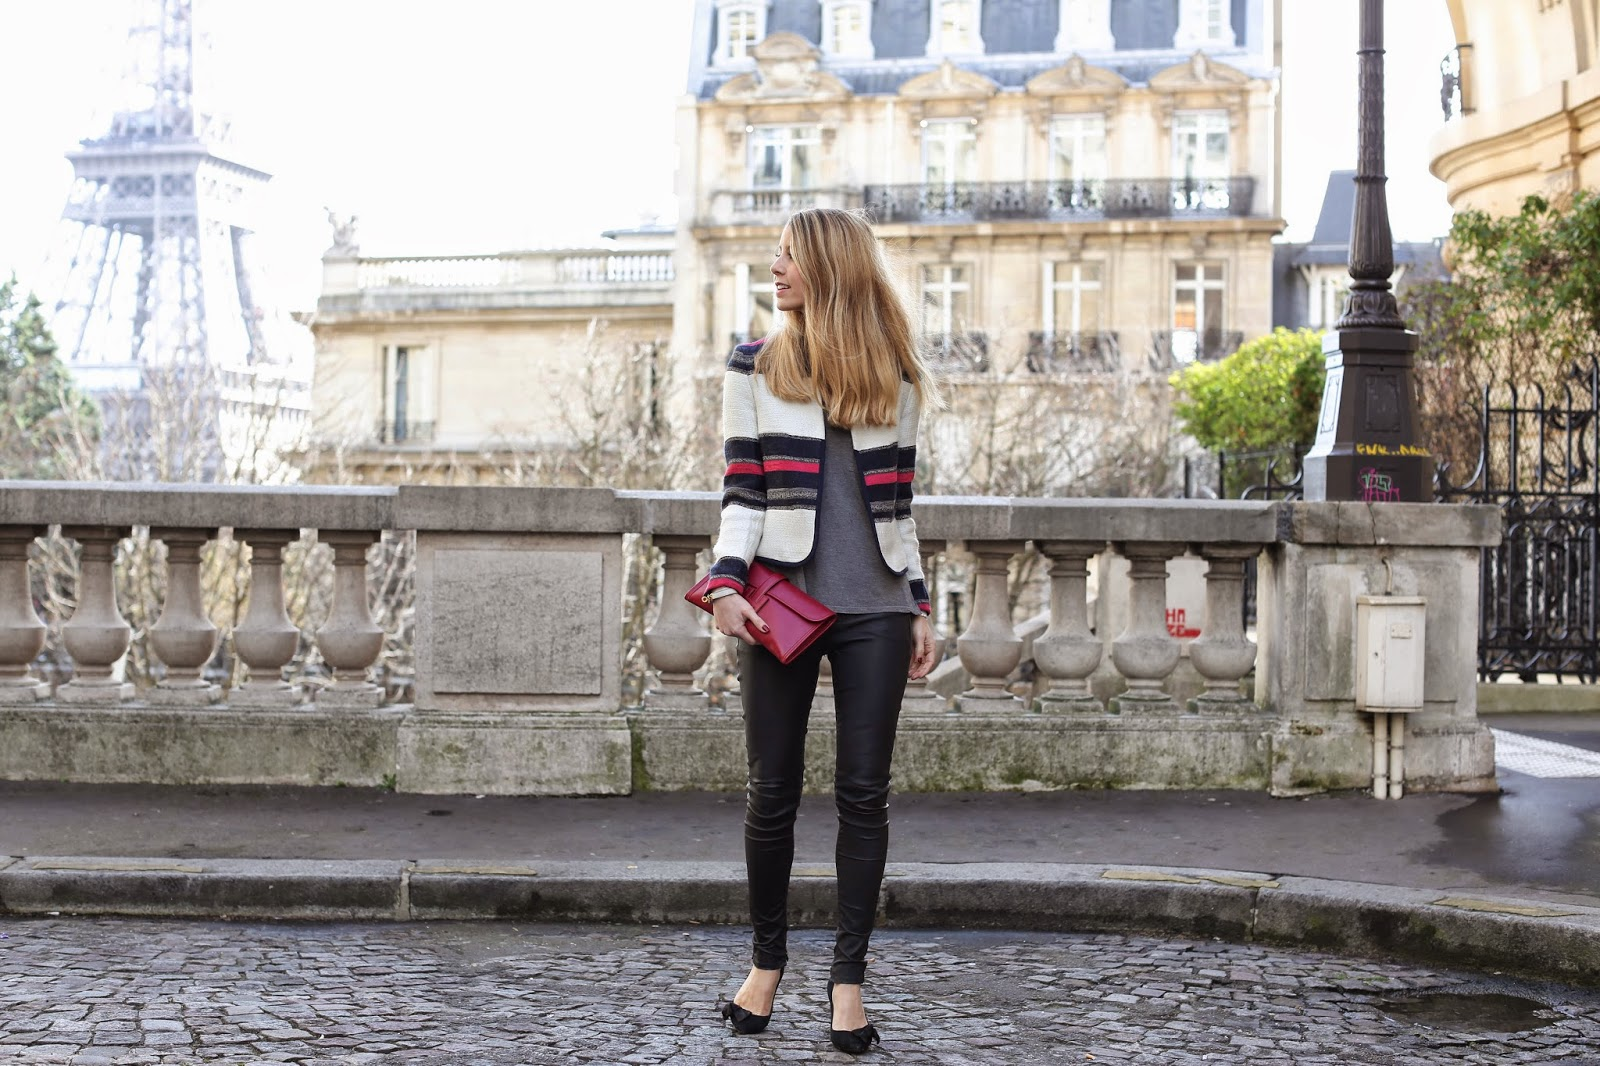 burberry, burberry makeup, fashion blogger, zara, blk dnm, isabel marant, streetstyle, eiffel twoer, outfit